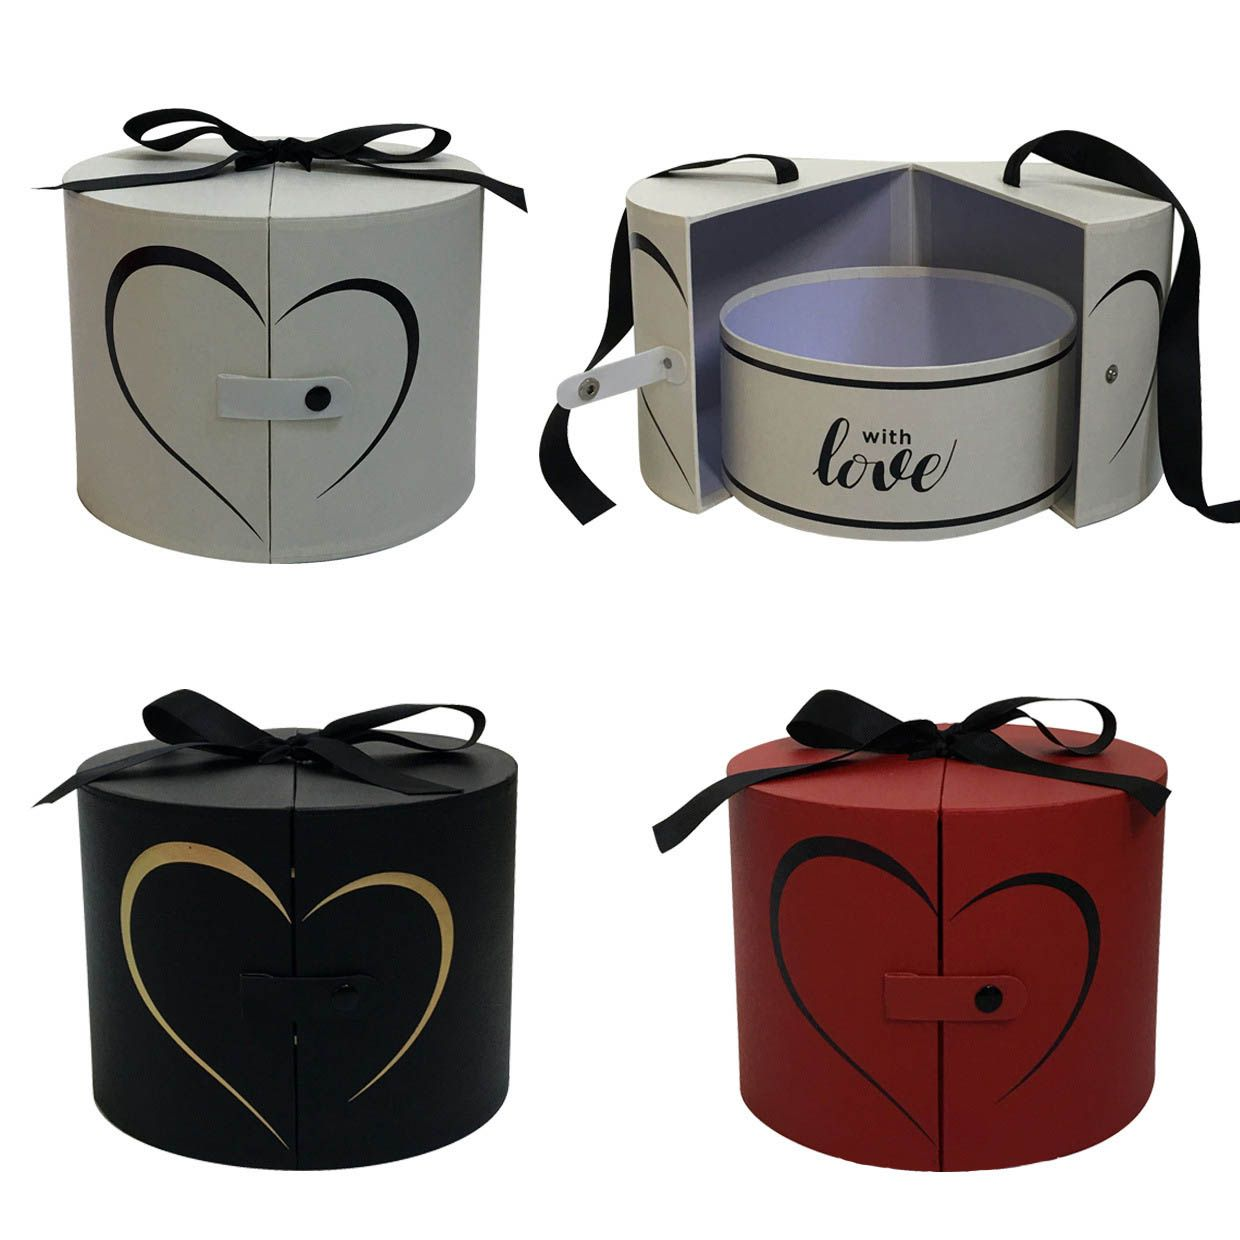 Round boxes help to take your products very nicley